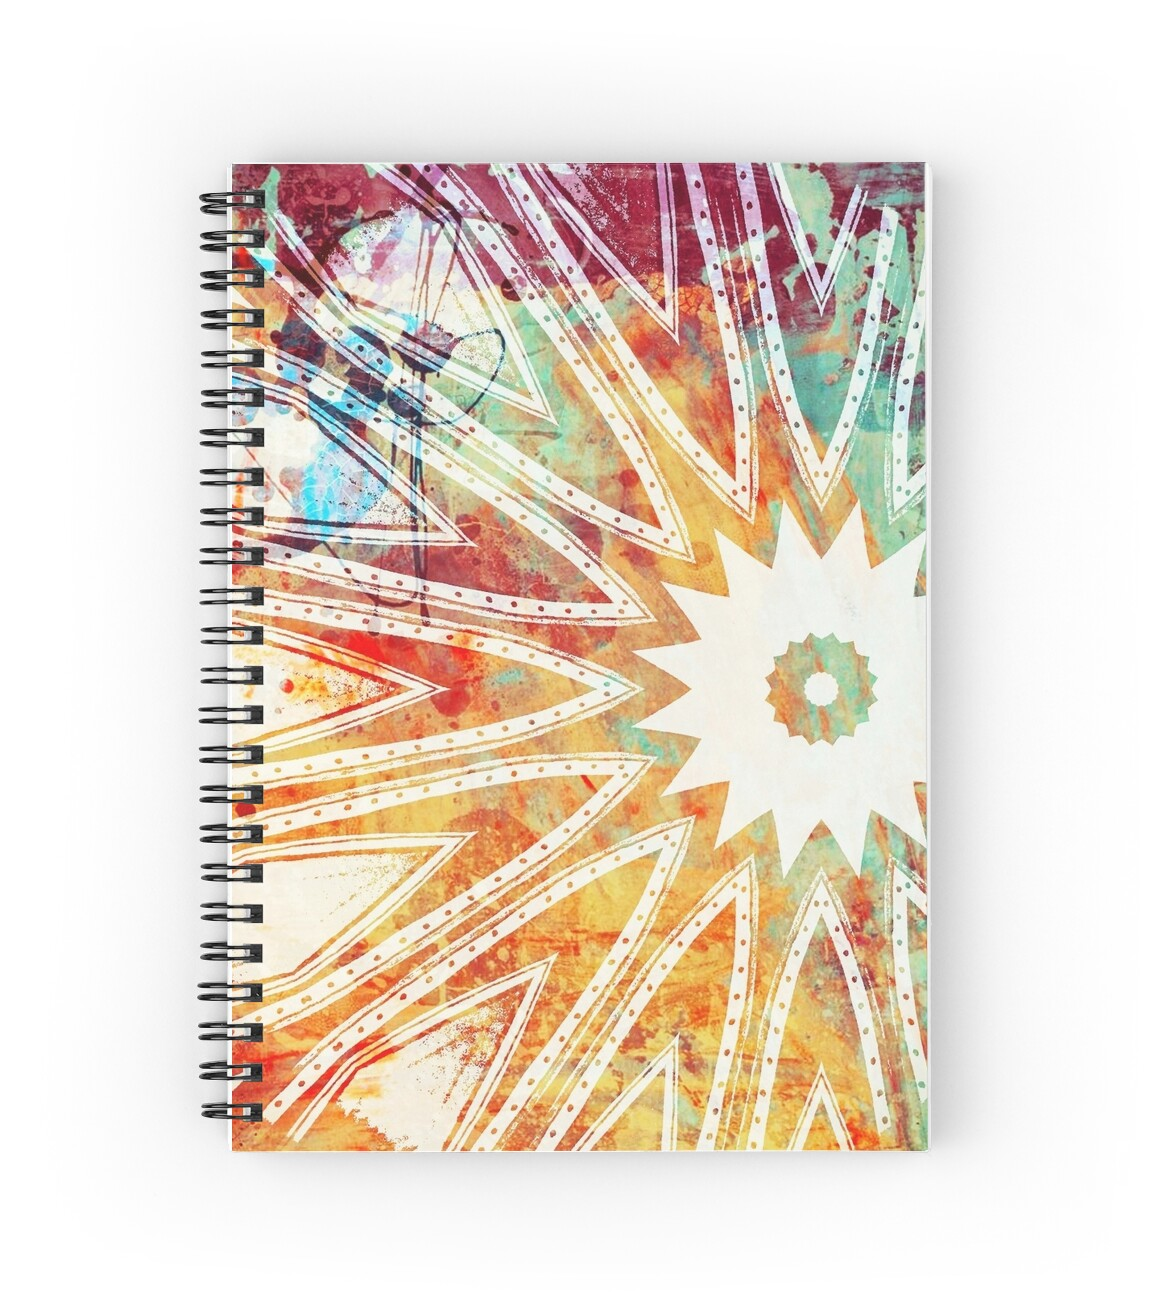 grunge kiss spiral notebooks by heaven7 redbubble. Black Bedroom Furniture Sets. Home Design Ideas